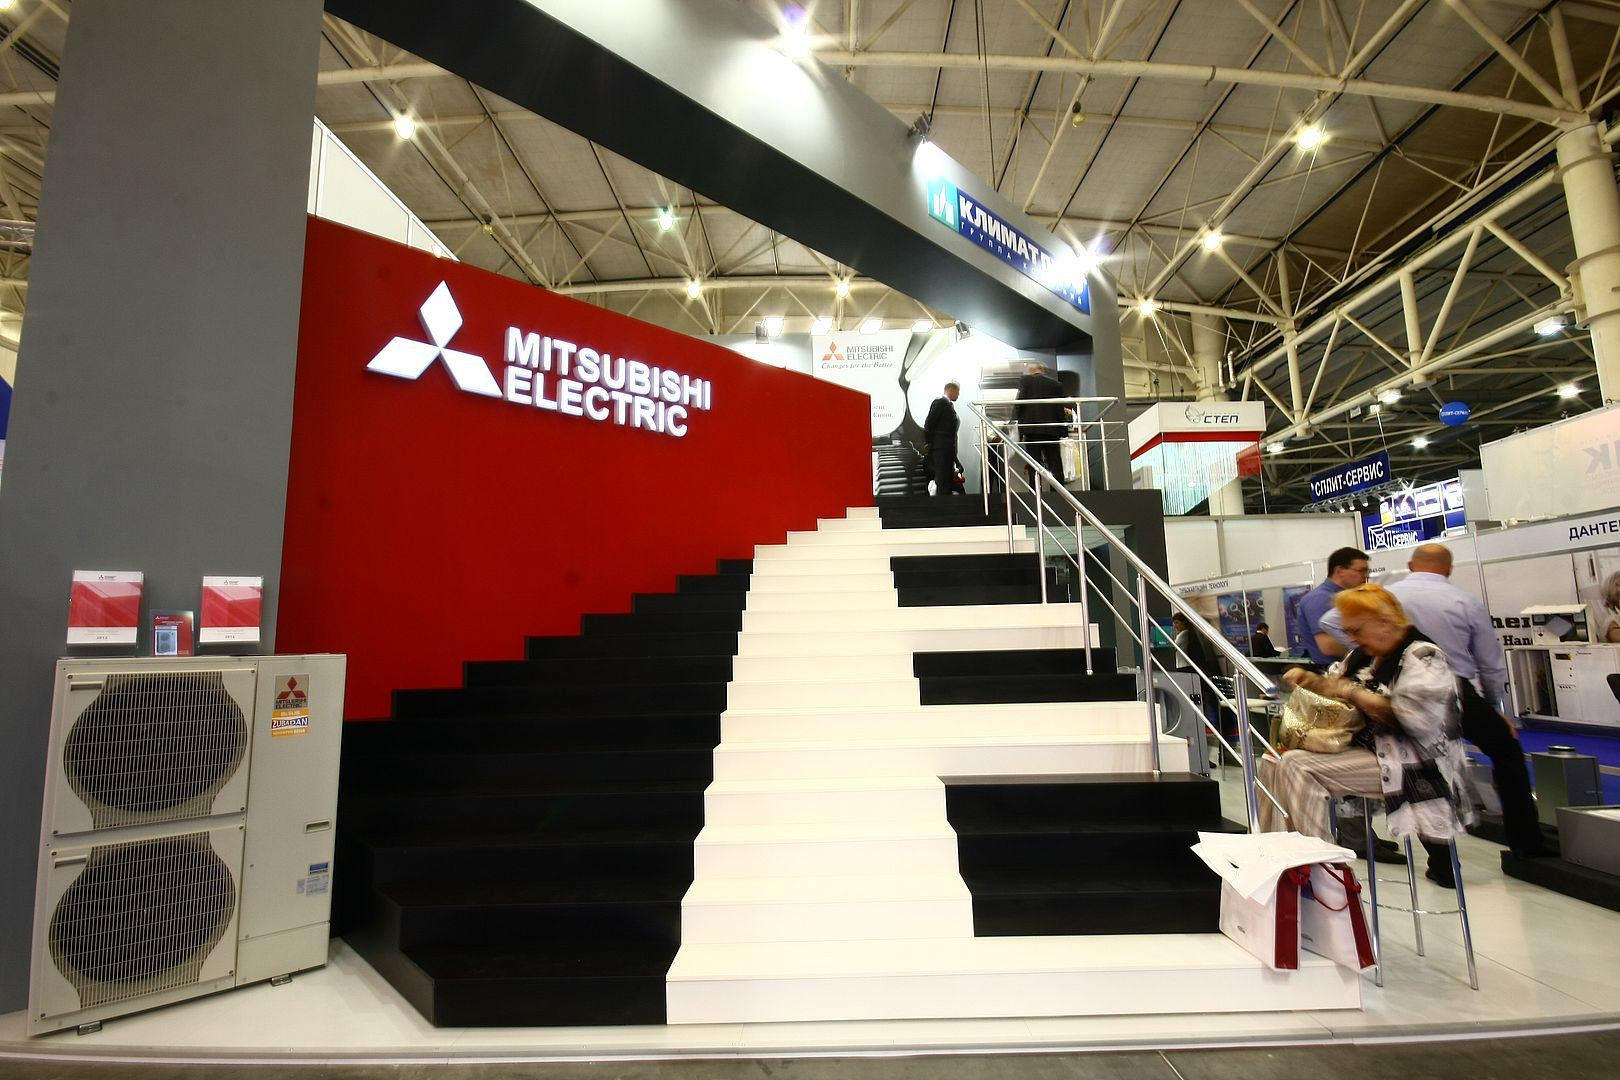 #alpacaexpogroup #mitsubishielectric #standdesign #exhibitionstand #exhibitionbooth #customstand #customstands #custommadestand #tailoredstand